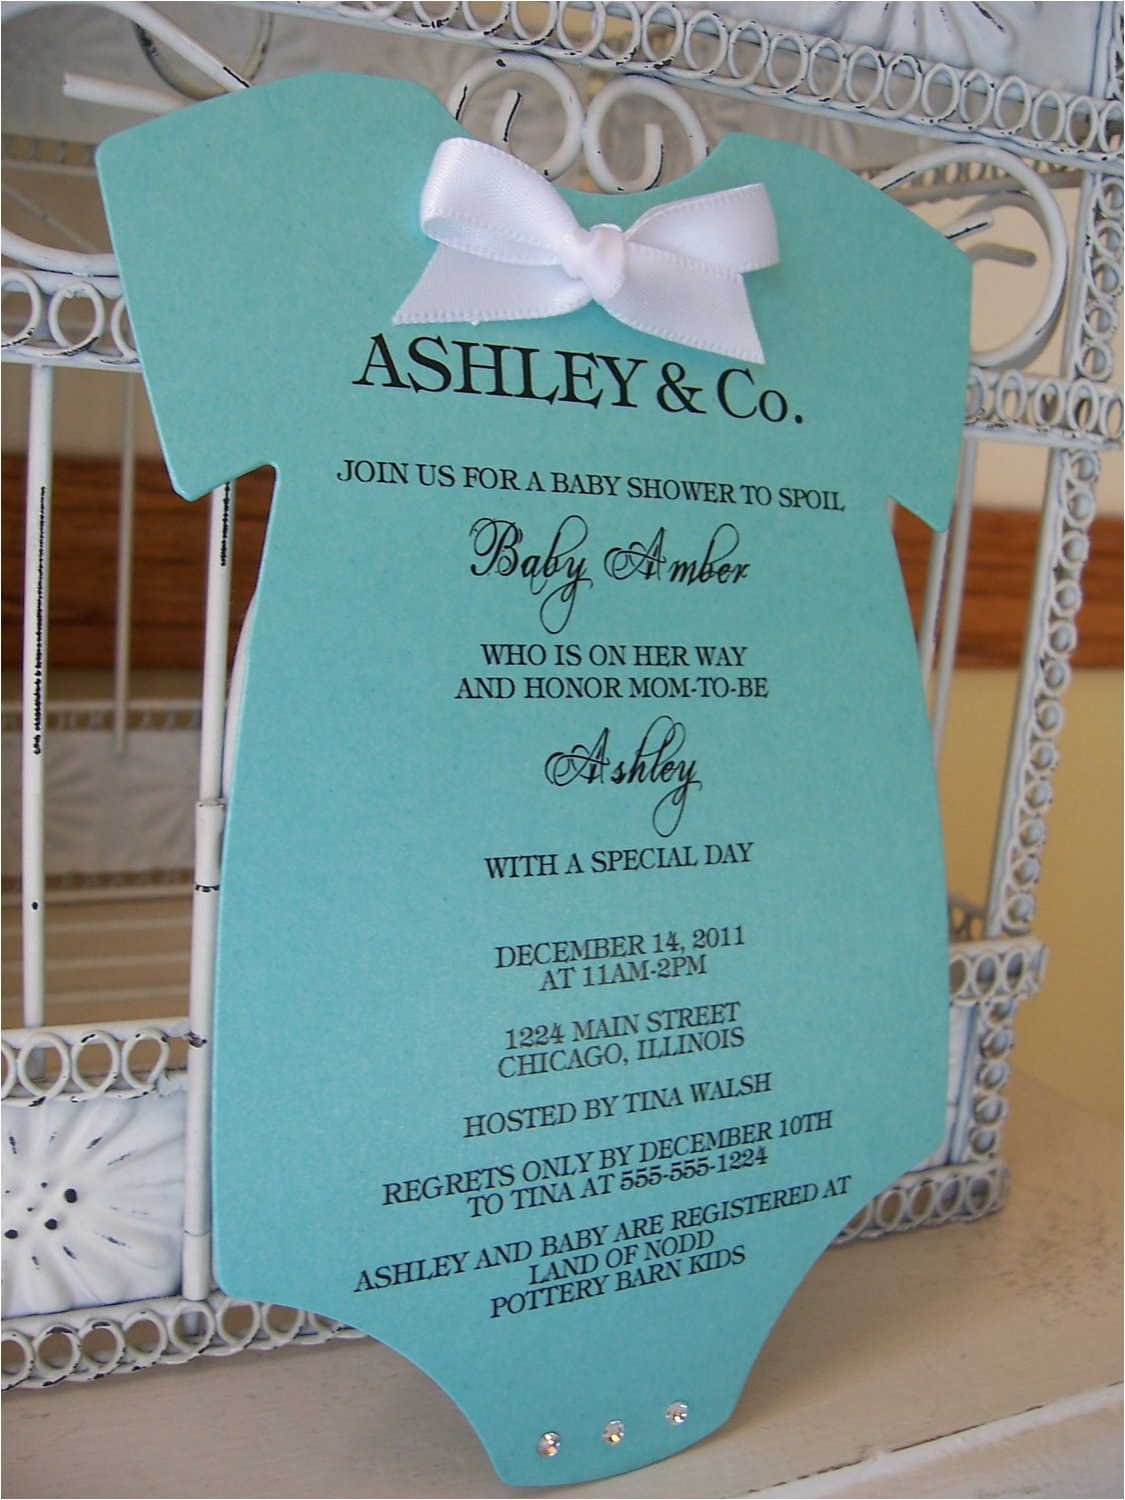 Tiffany and Co Baby Shower Invites Tiffany Esie Baby Shower Invitations Reserved for Nicole